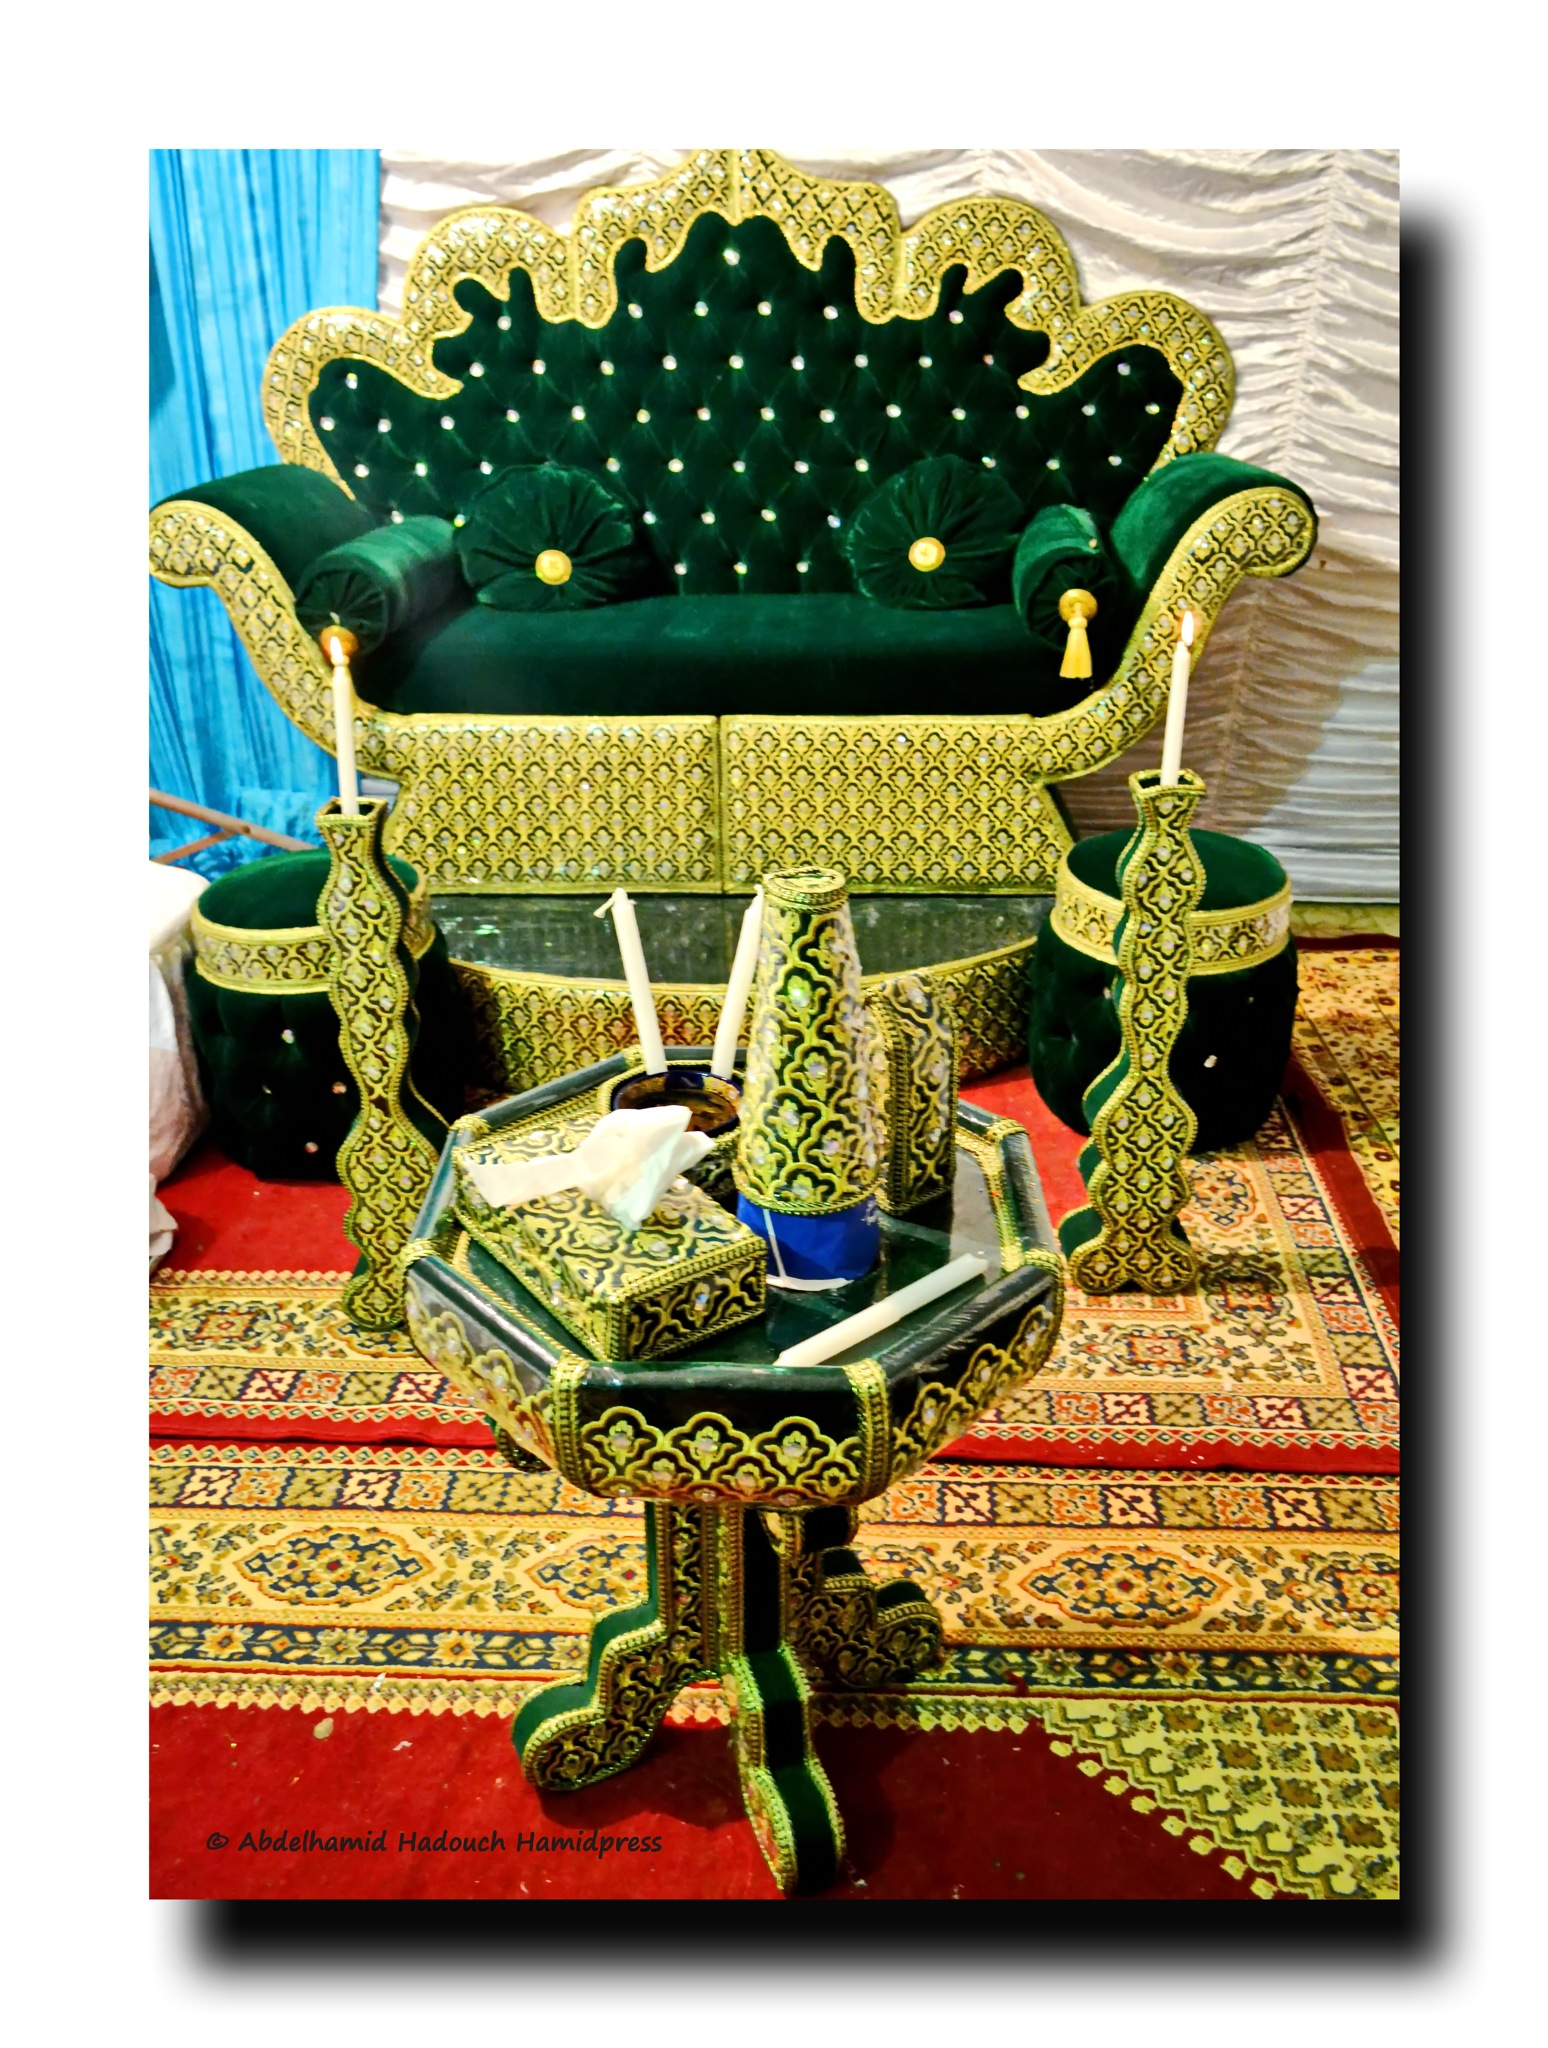 Pour le mariage  by Abdelhamid Hadouch